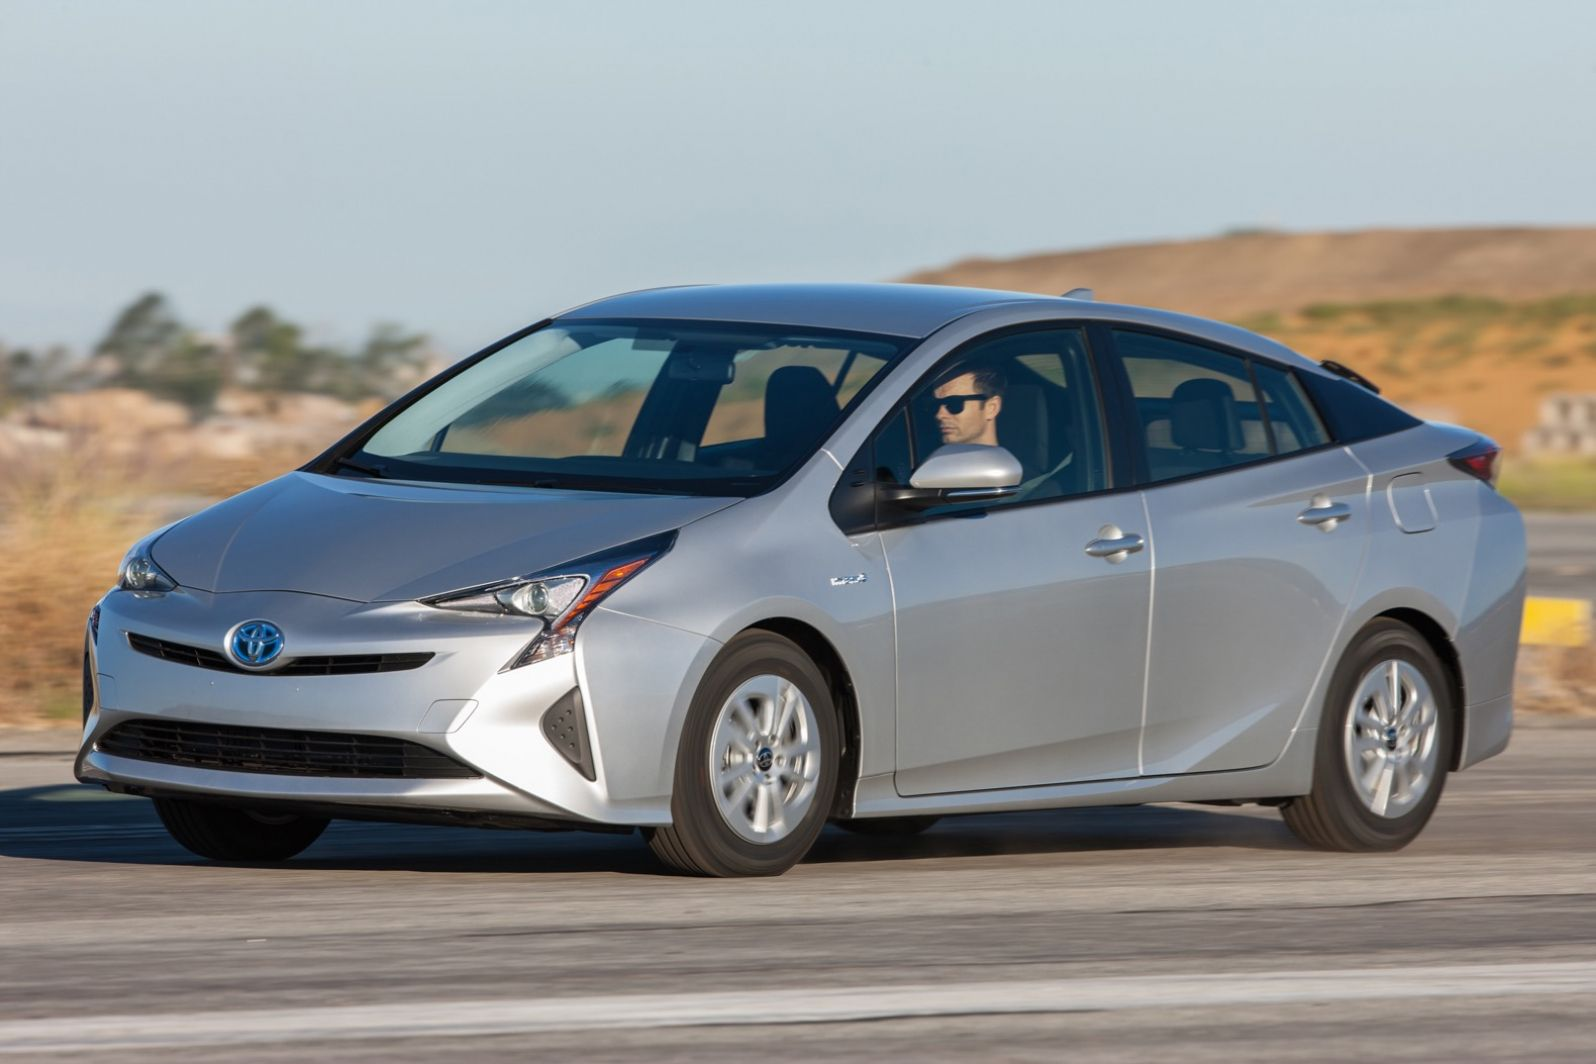 16 Hybrids And Electric Cars Hybrid Cars Best Gas Mileage